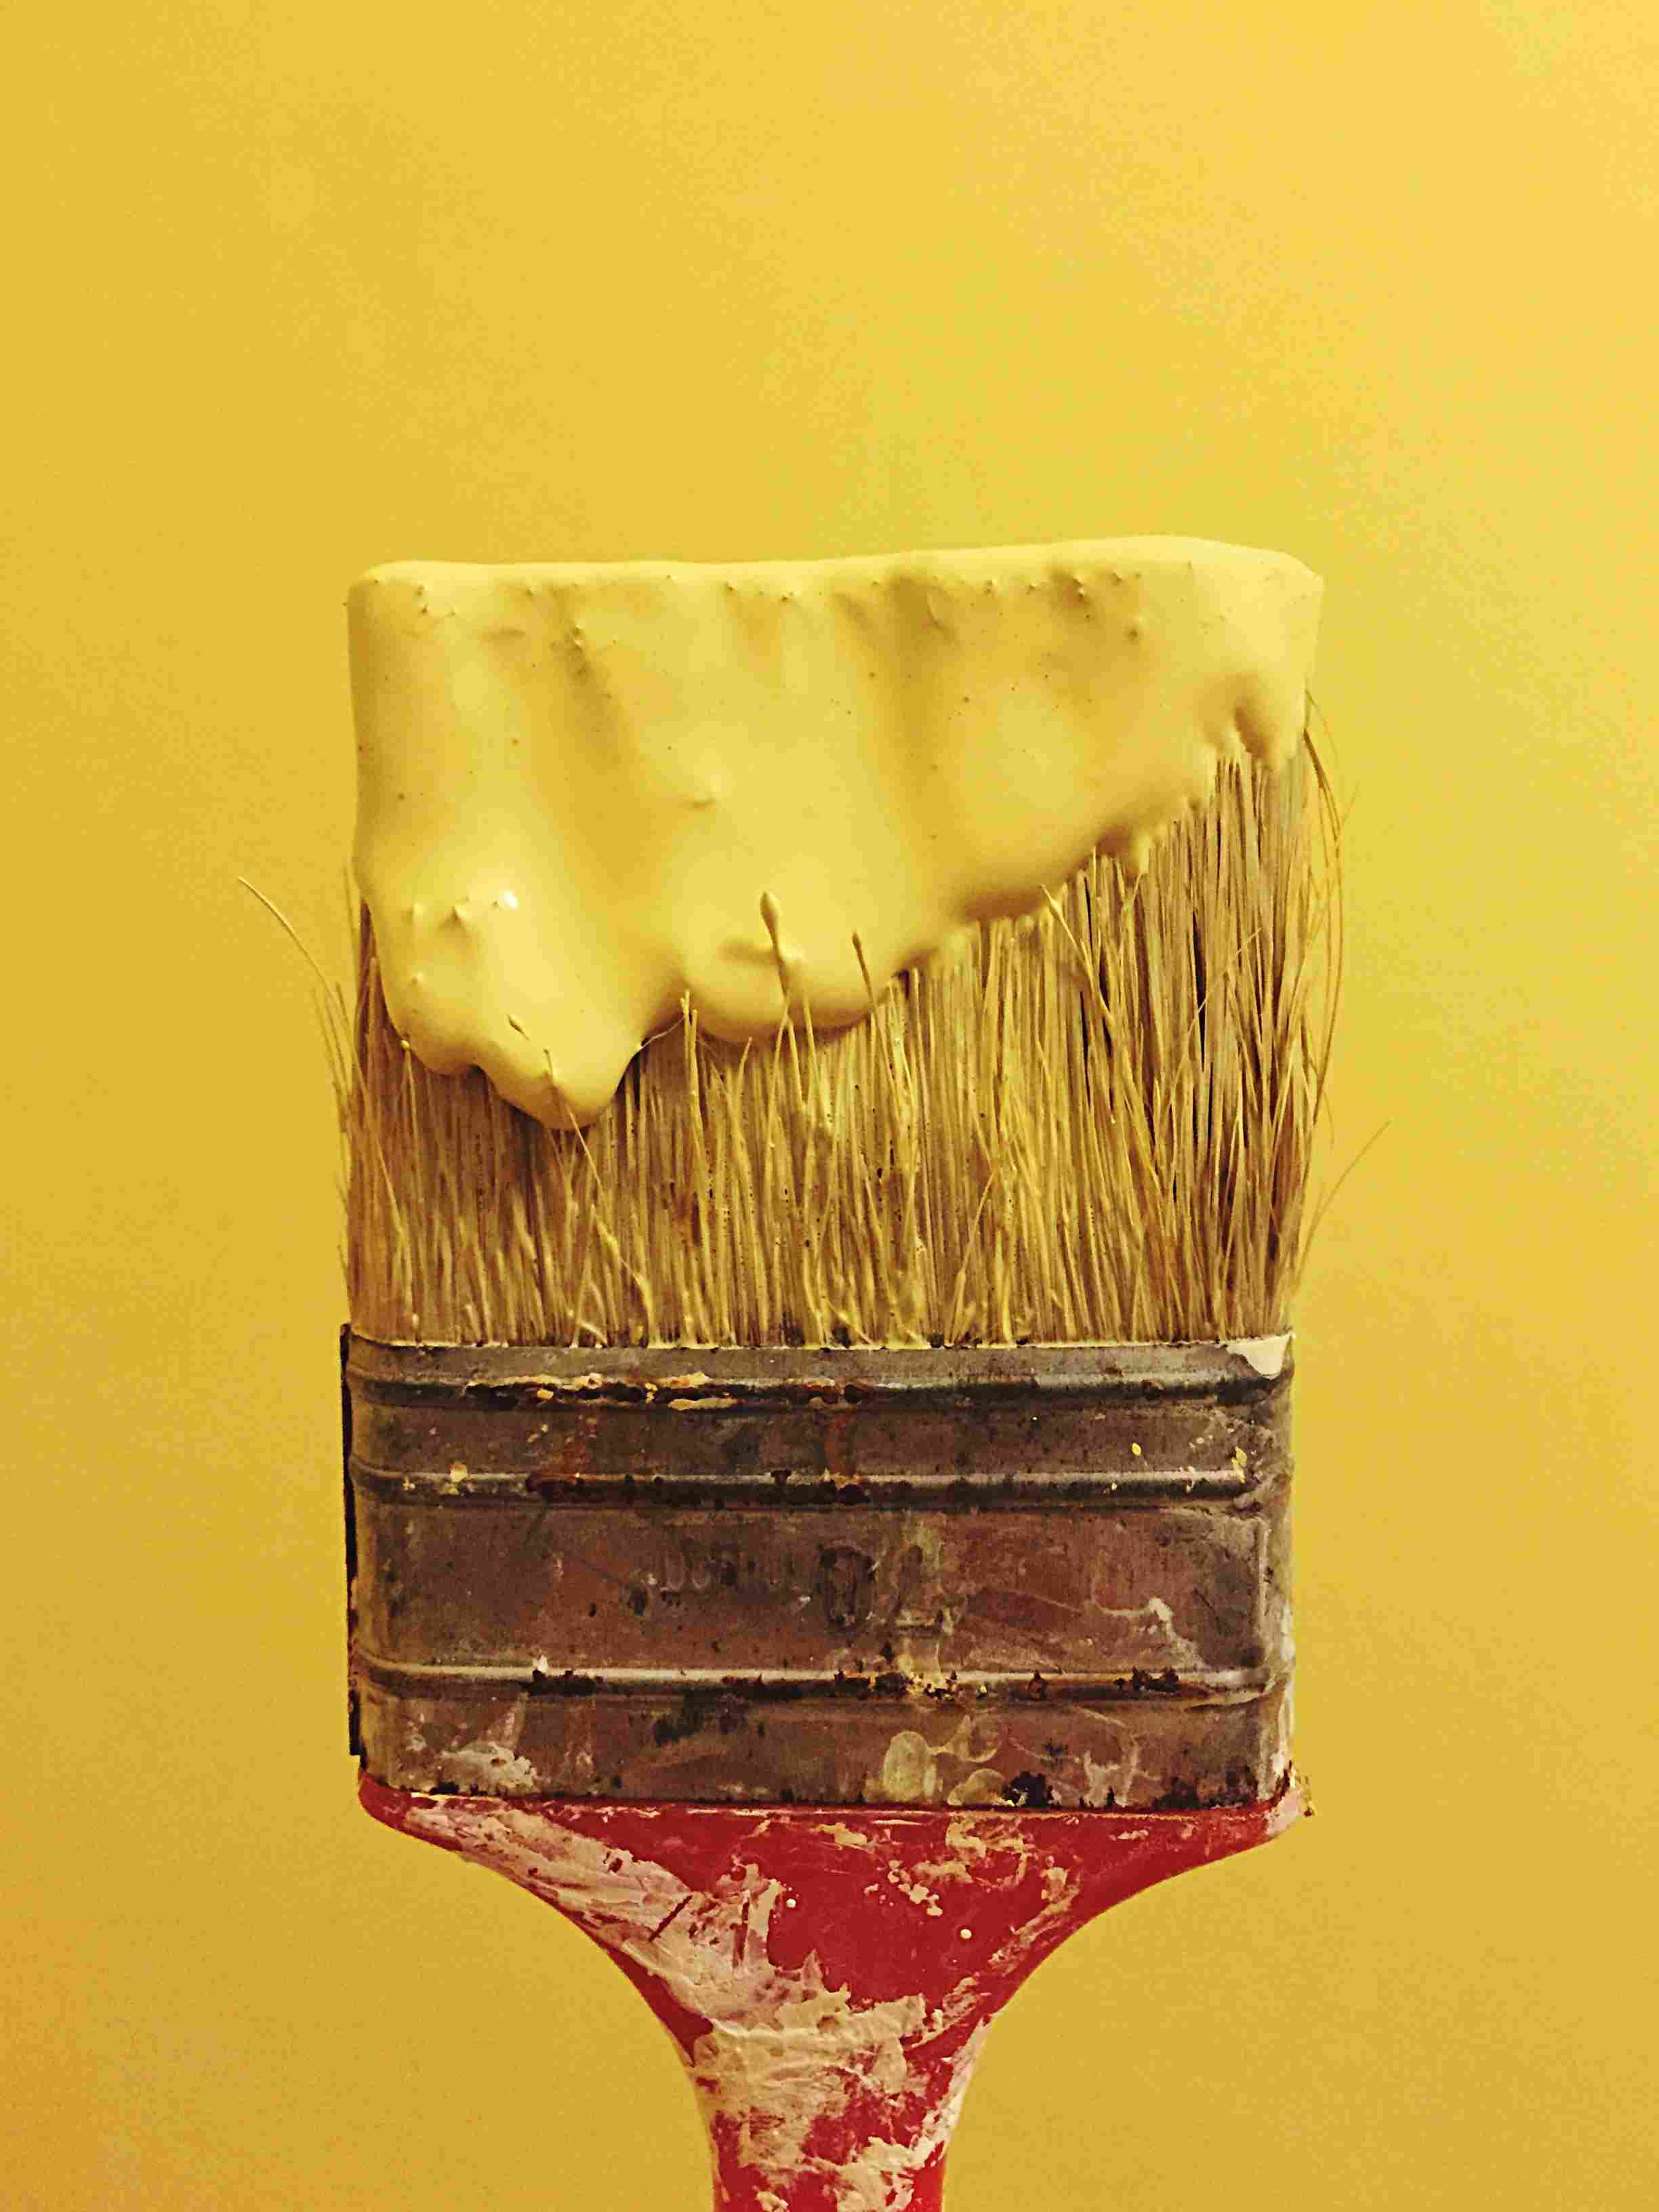 How to Correctly Use a Paintbrush on Walls